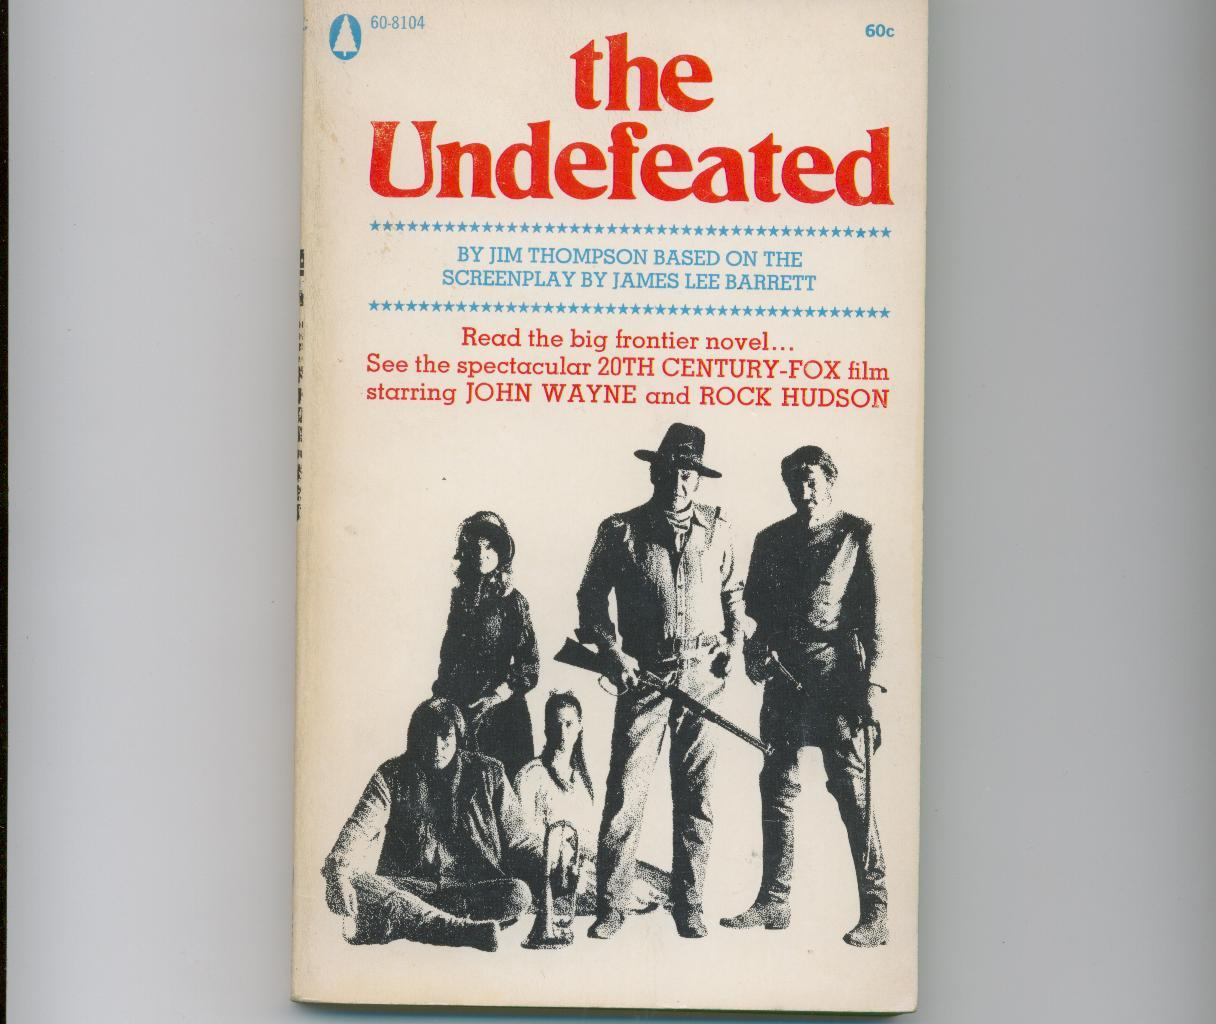 Jim Thompson's THE UNDEFEATED - paperback original